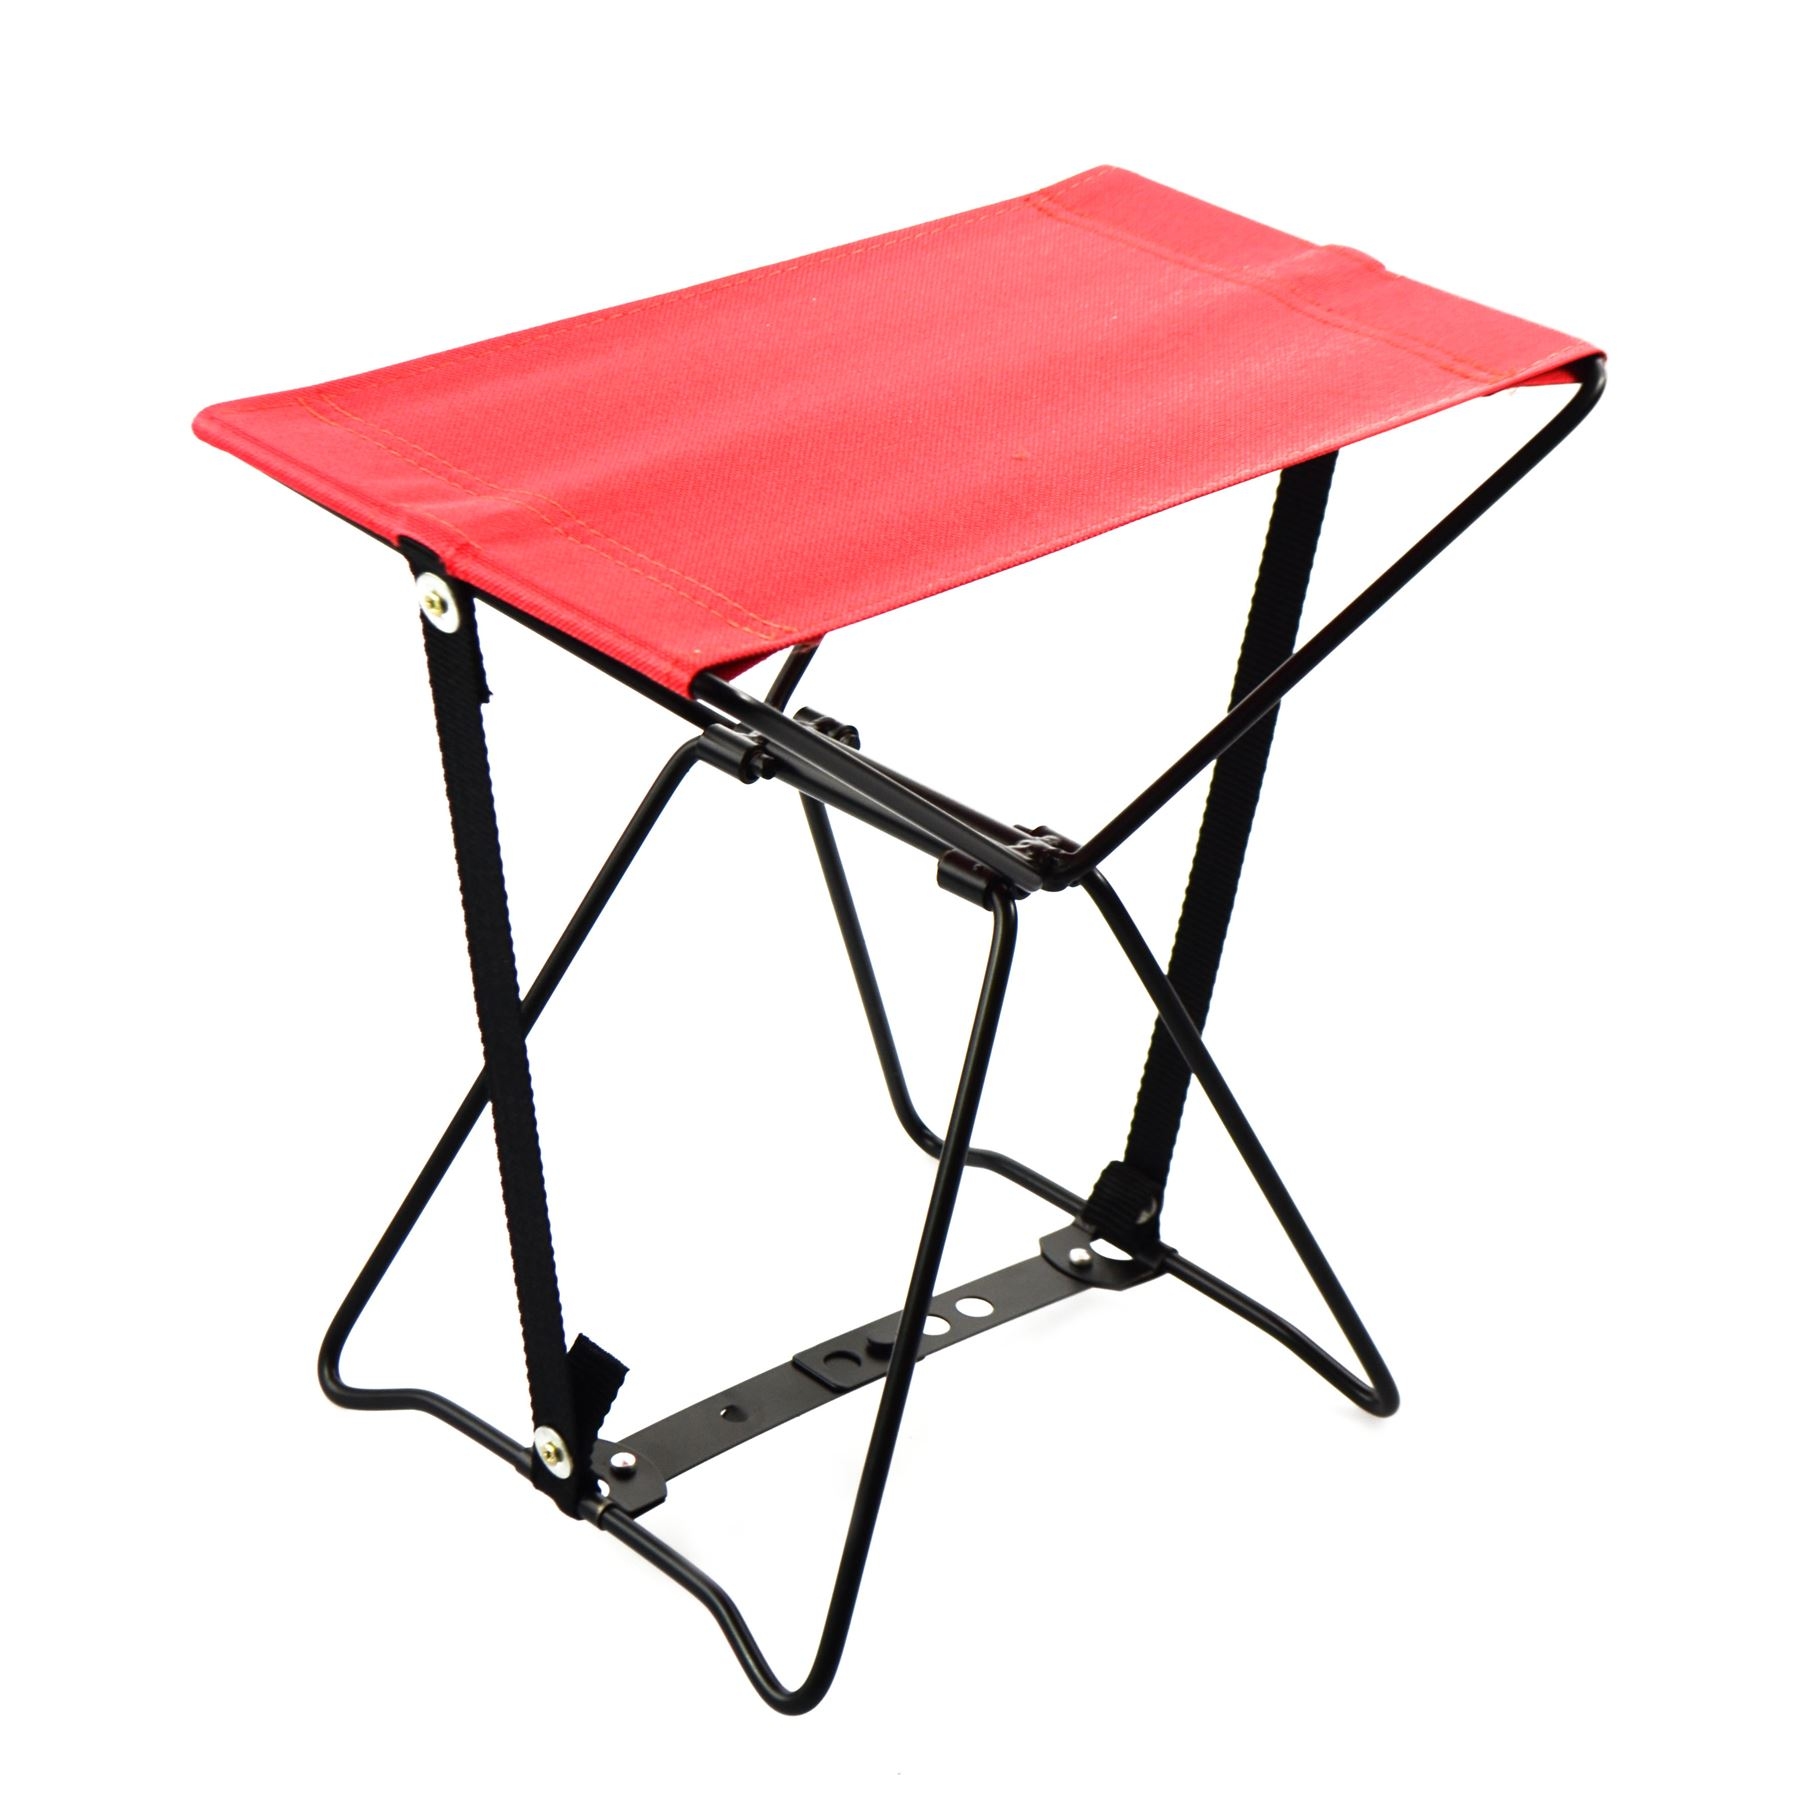 Fold Up Outdoor Chairs Folding Camping Pocket Chair Collapsible Garden Outdoor